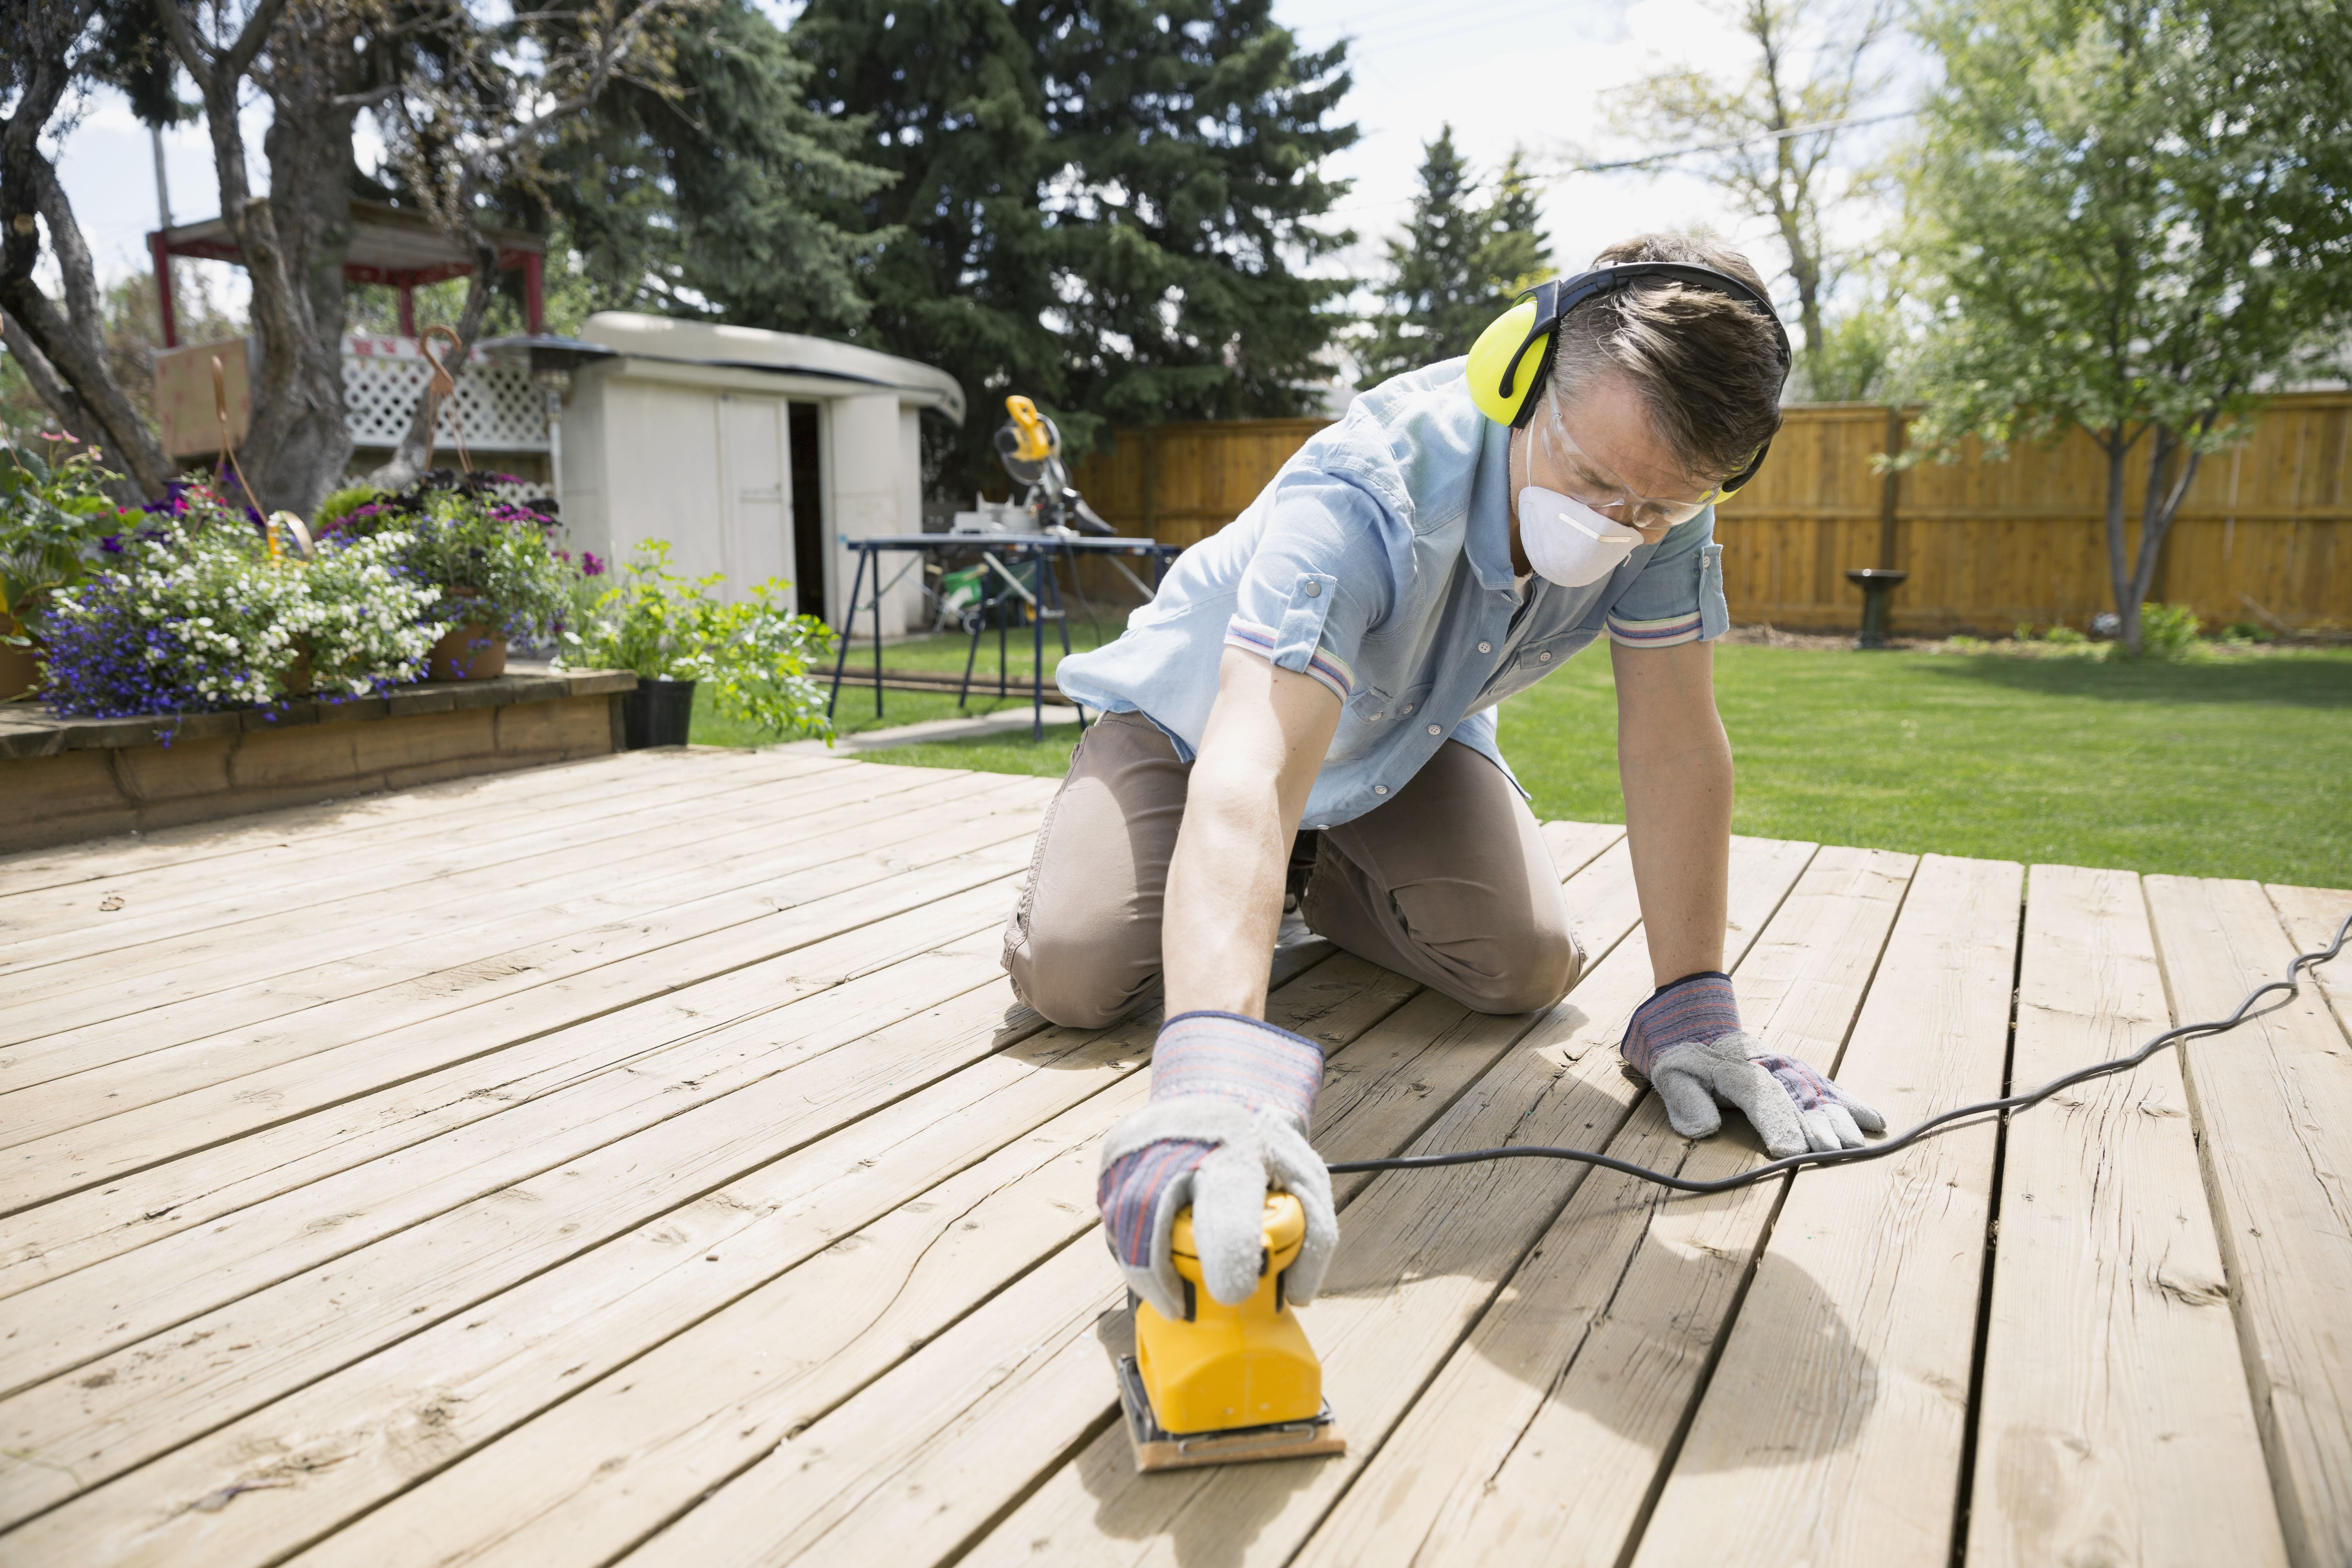 hardwood floor refinishing fargo nd of refinishing a wood deck an overview within man sanding backyard deck 500817135 5810fe043df78c2c7315c92b